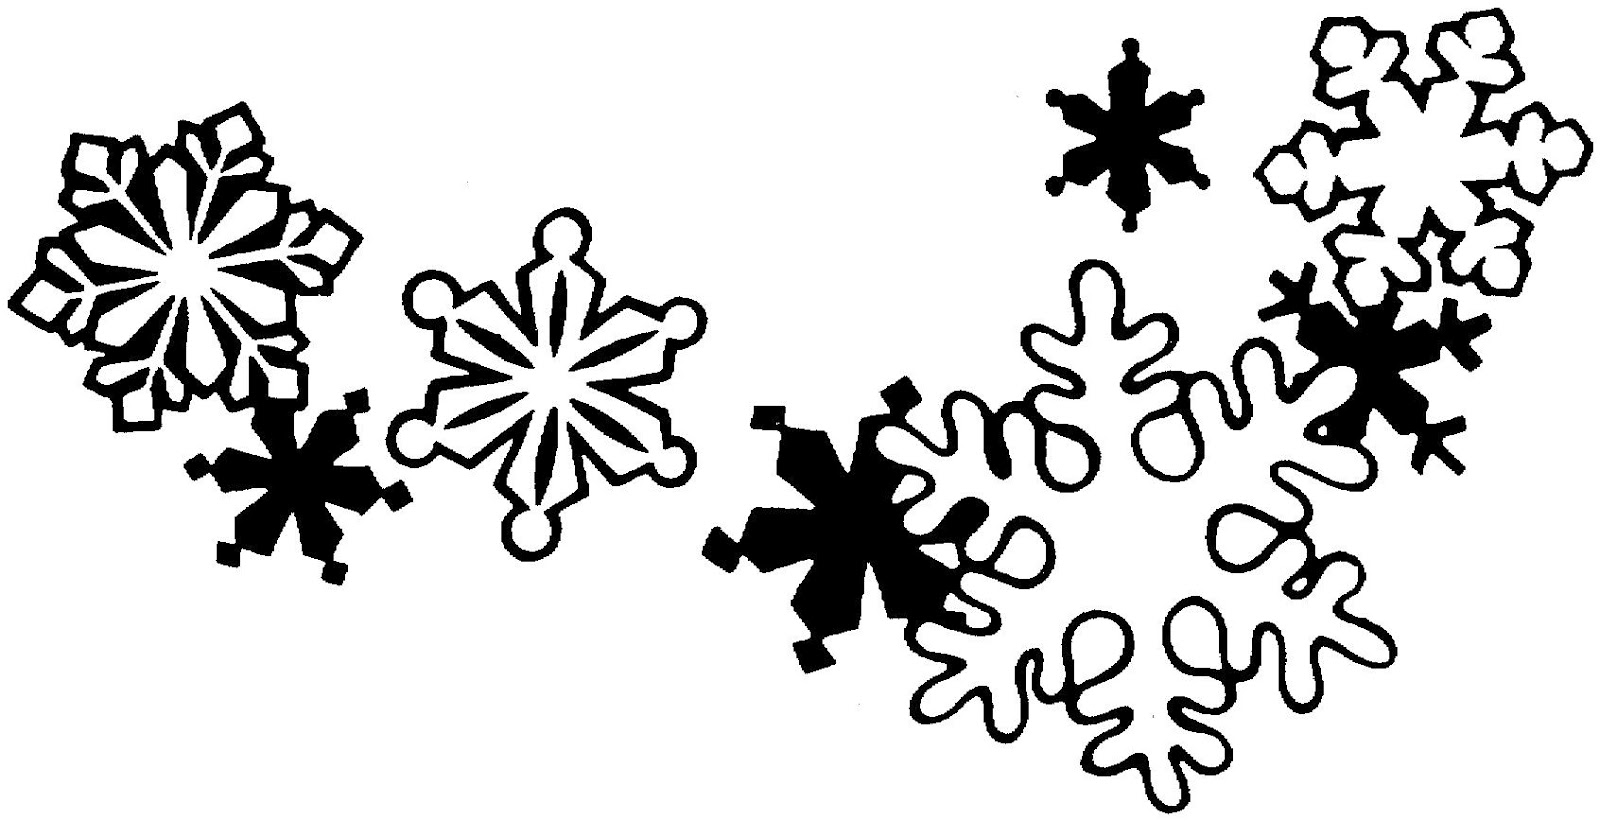 Black And White Christmas Borders - ClipArt Best